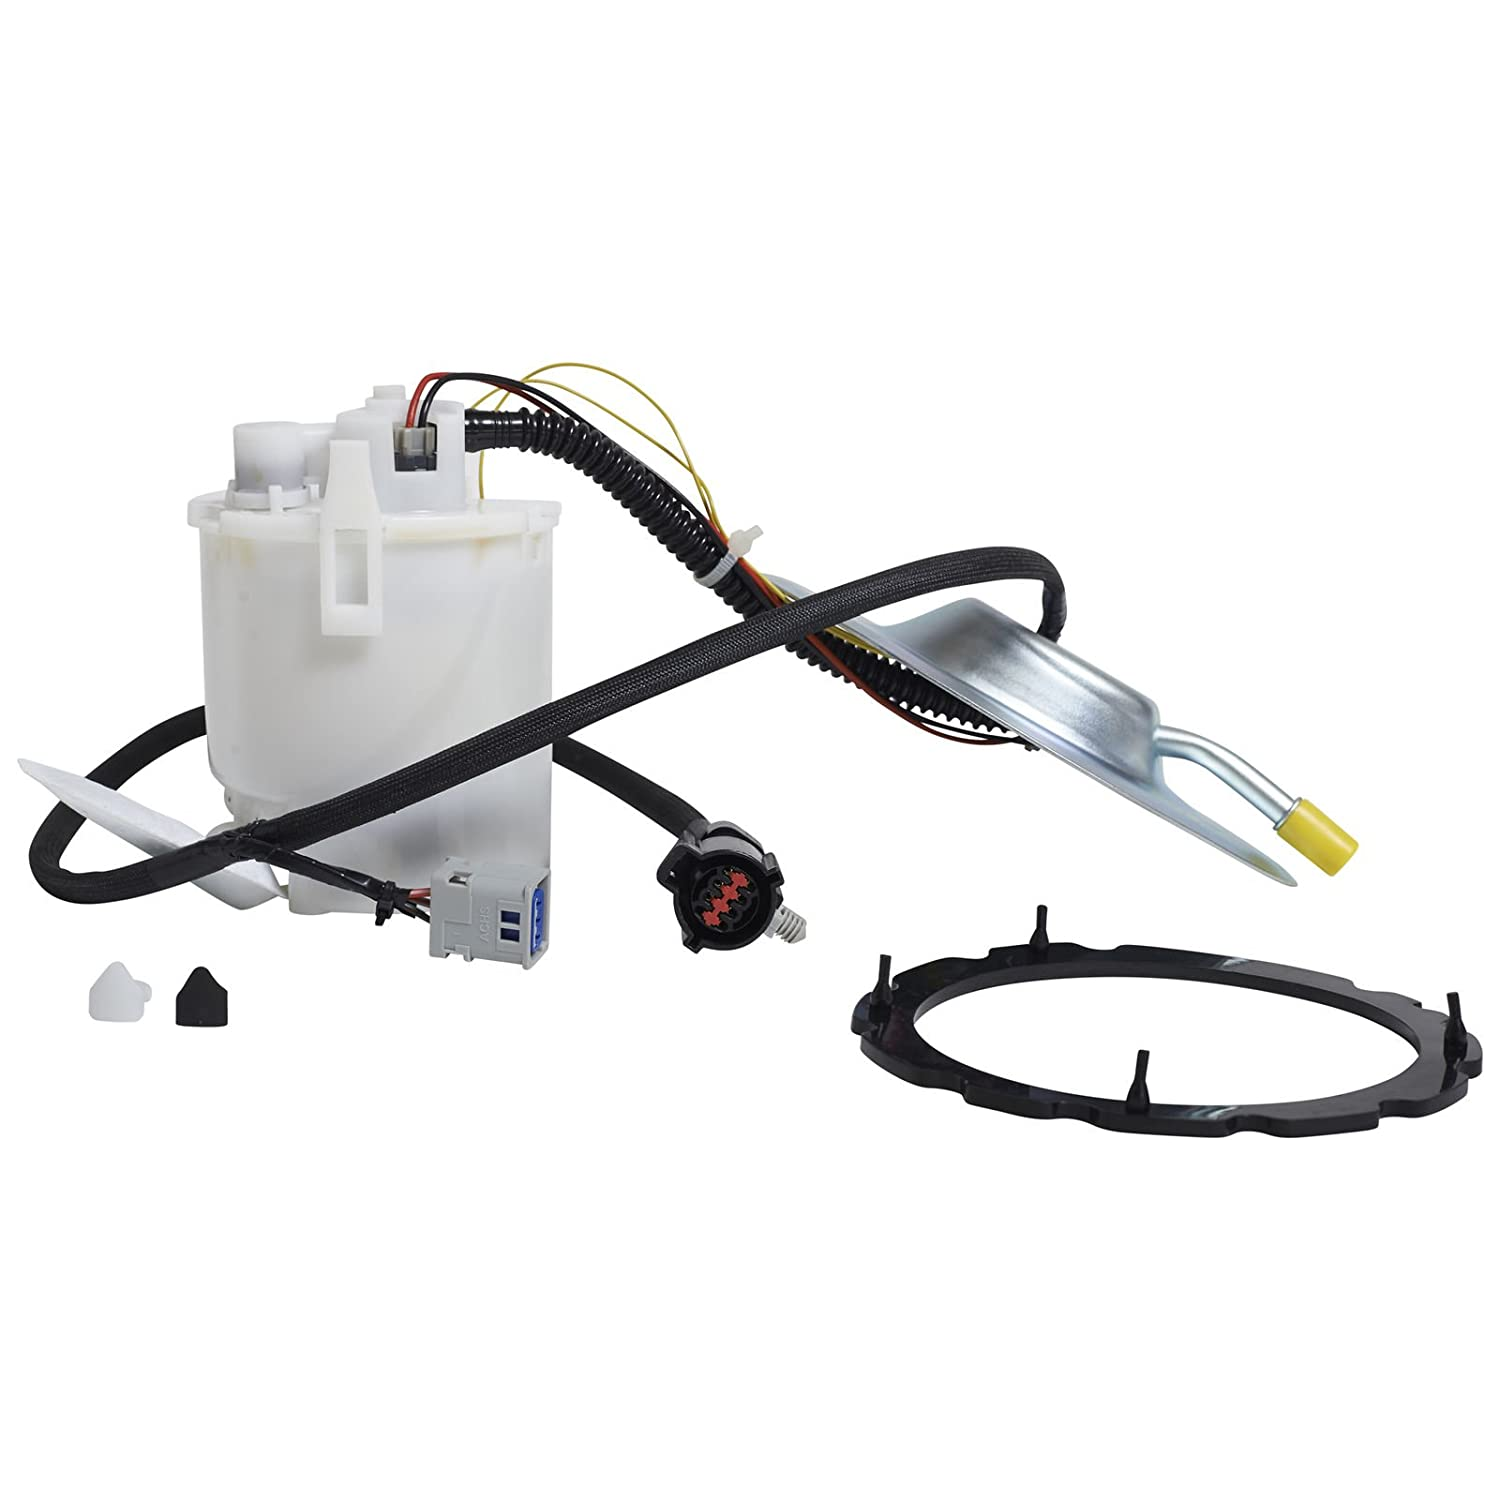 Fuel Pump For 2001 2004 Ford Mustang W Sending Unit Fits 1999 Filter E2301m 1r3z9h307ab 1r3u9h307aa Automotive